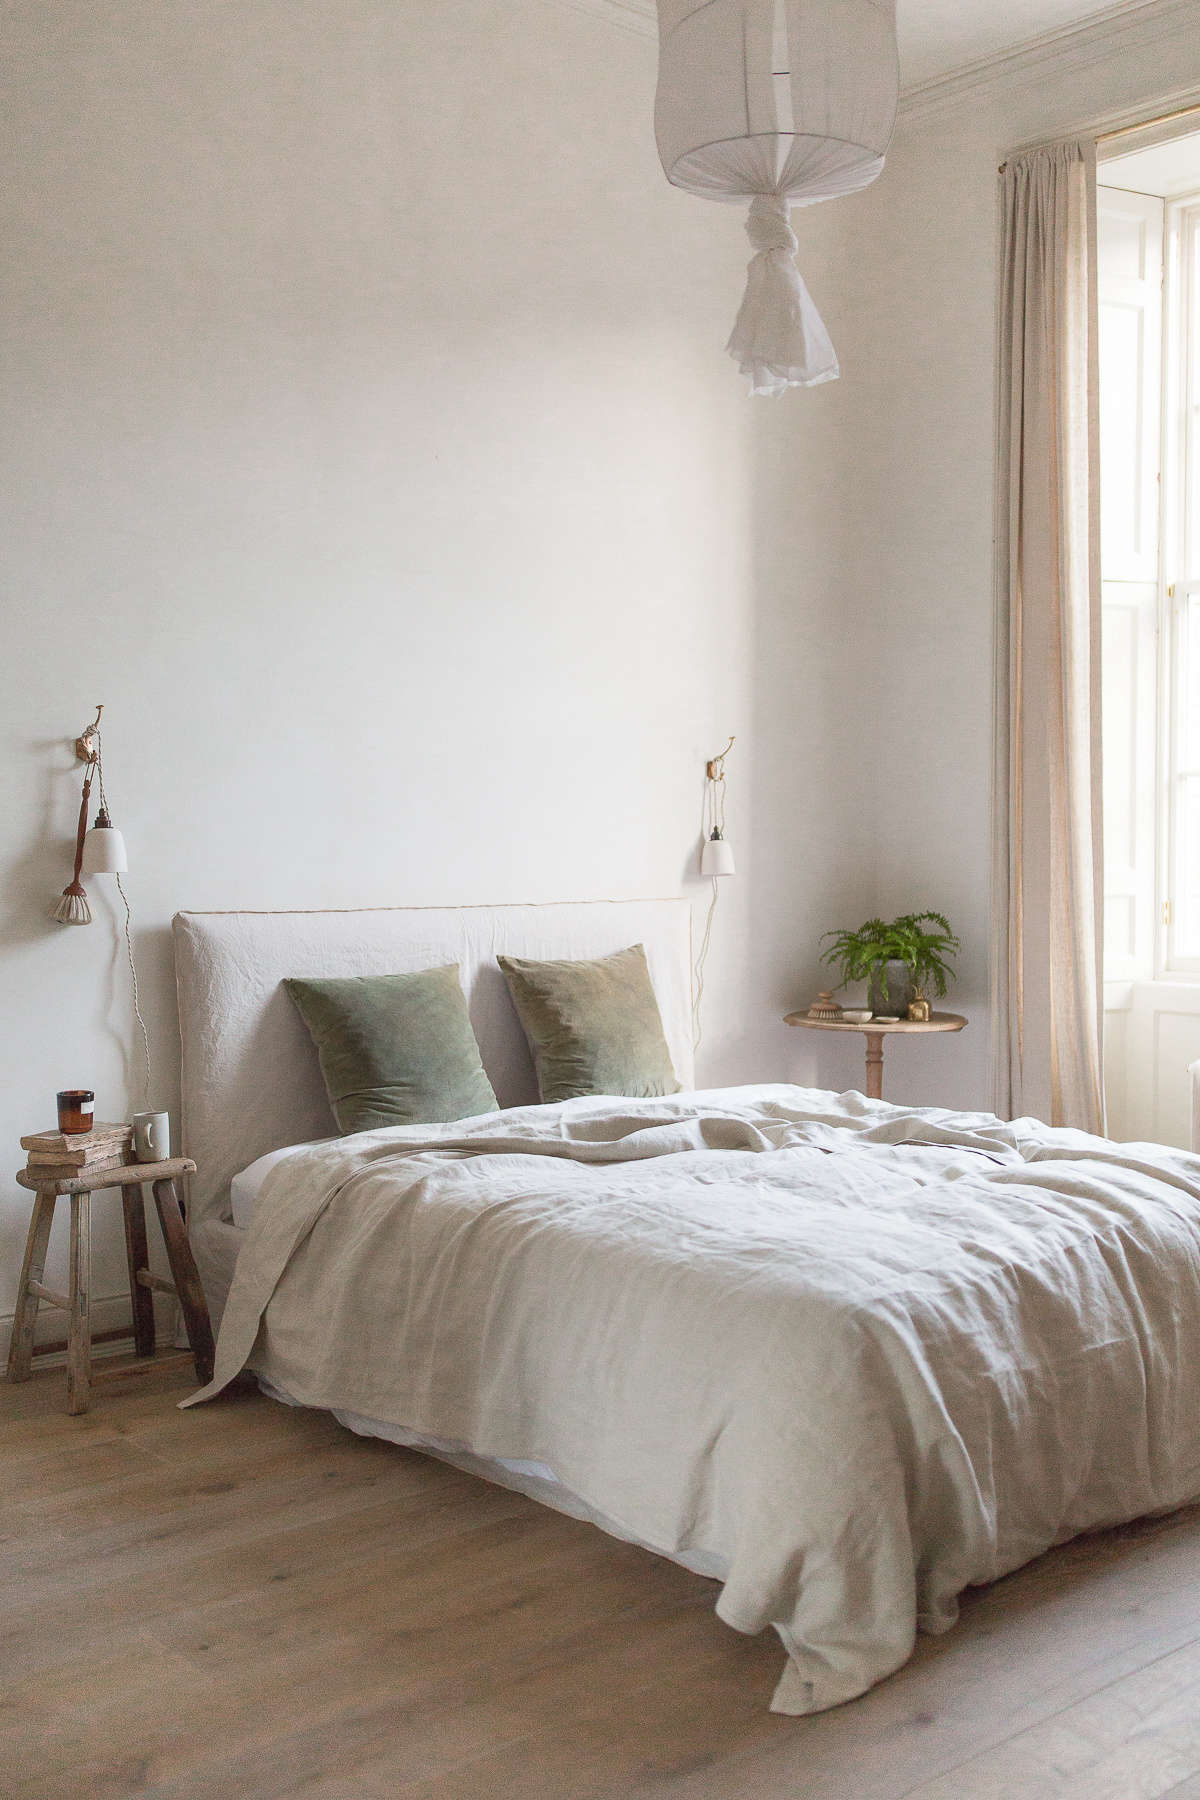 """The walls are limewashed in a warm neutral. """"The process is easy and very forgiving,"""" Nina told Margot. """"The effect achieved depends on the brushstrokes you use: you can get an almost solid color or more of a plaster look."""""""